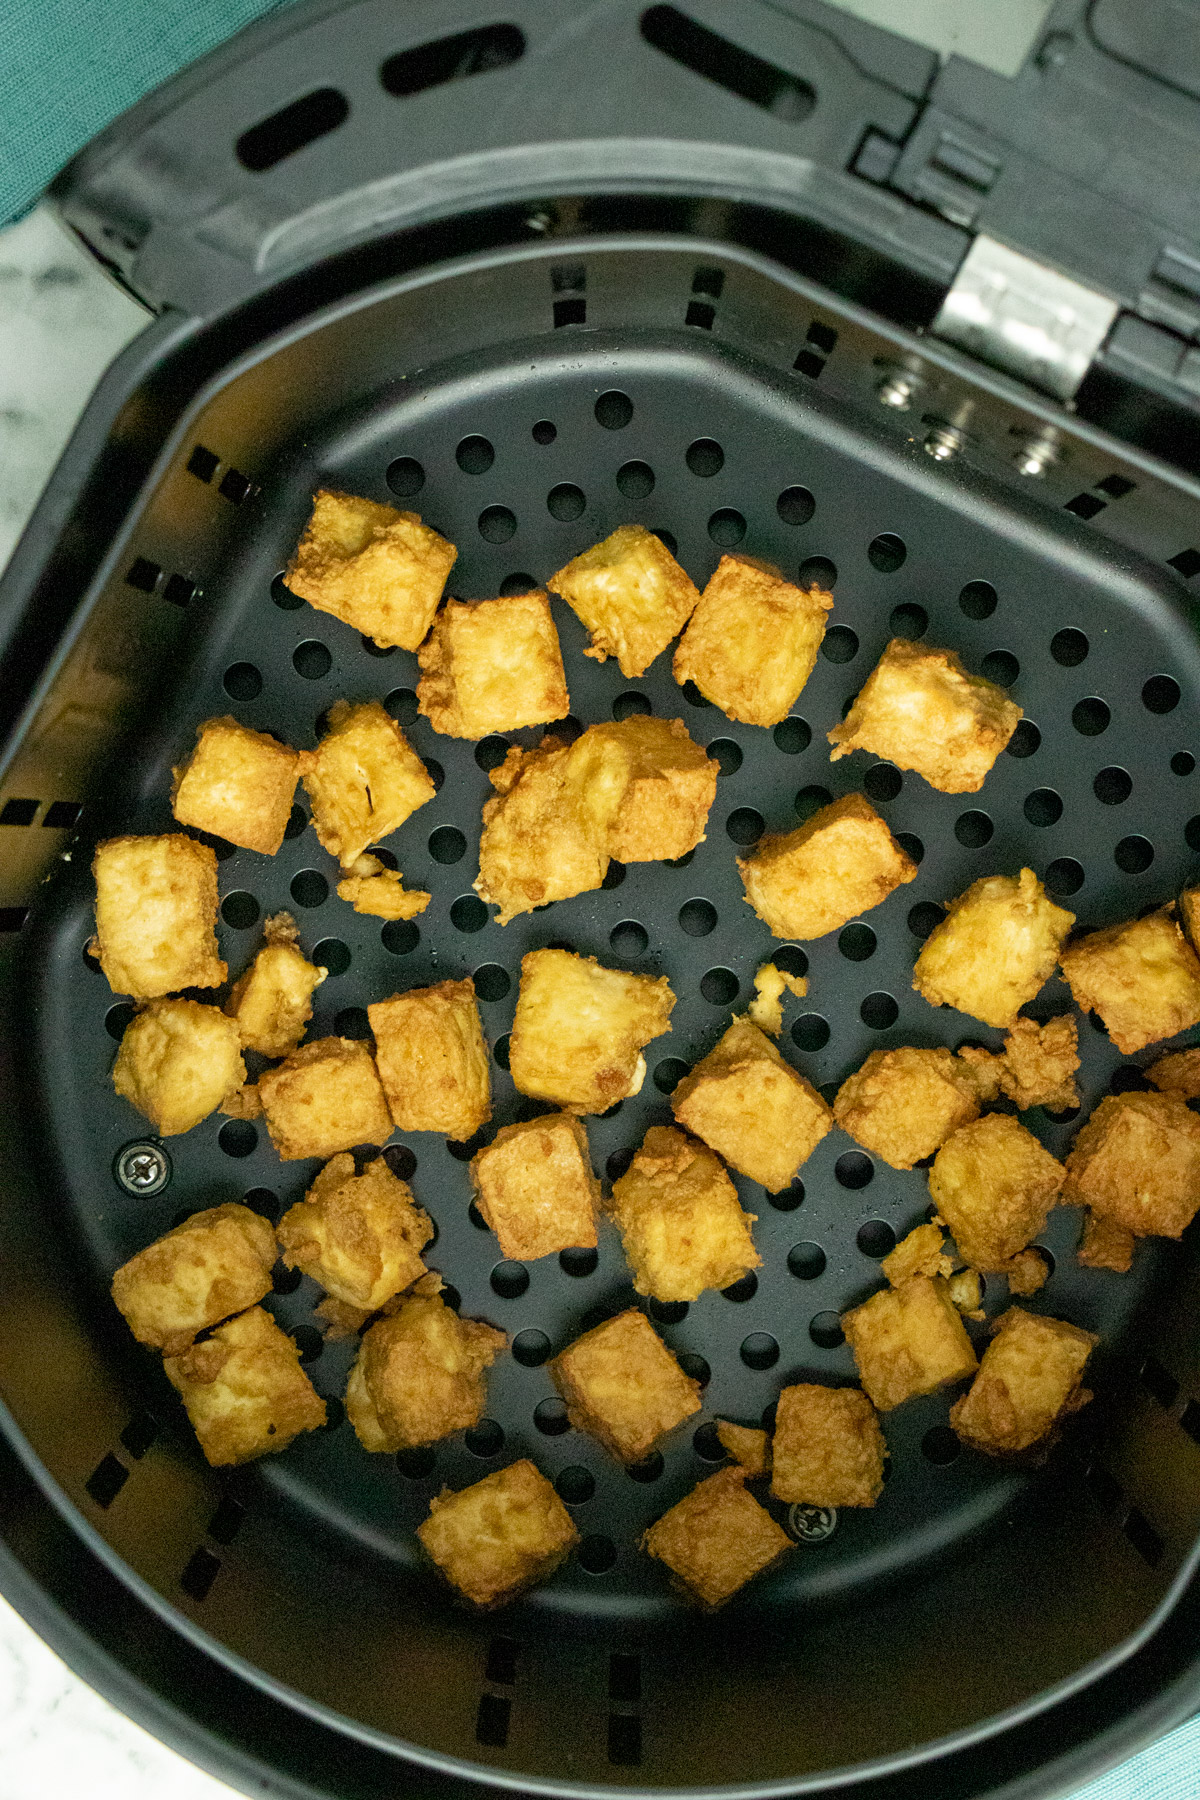 cooked tofu in the air fryer basket